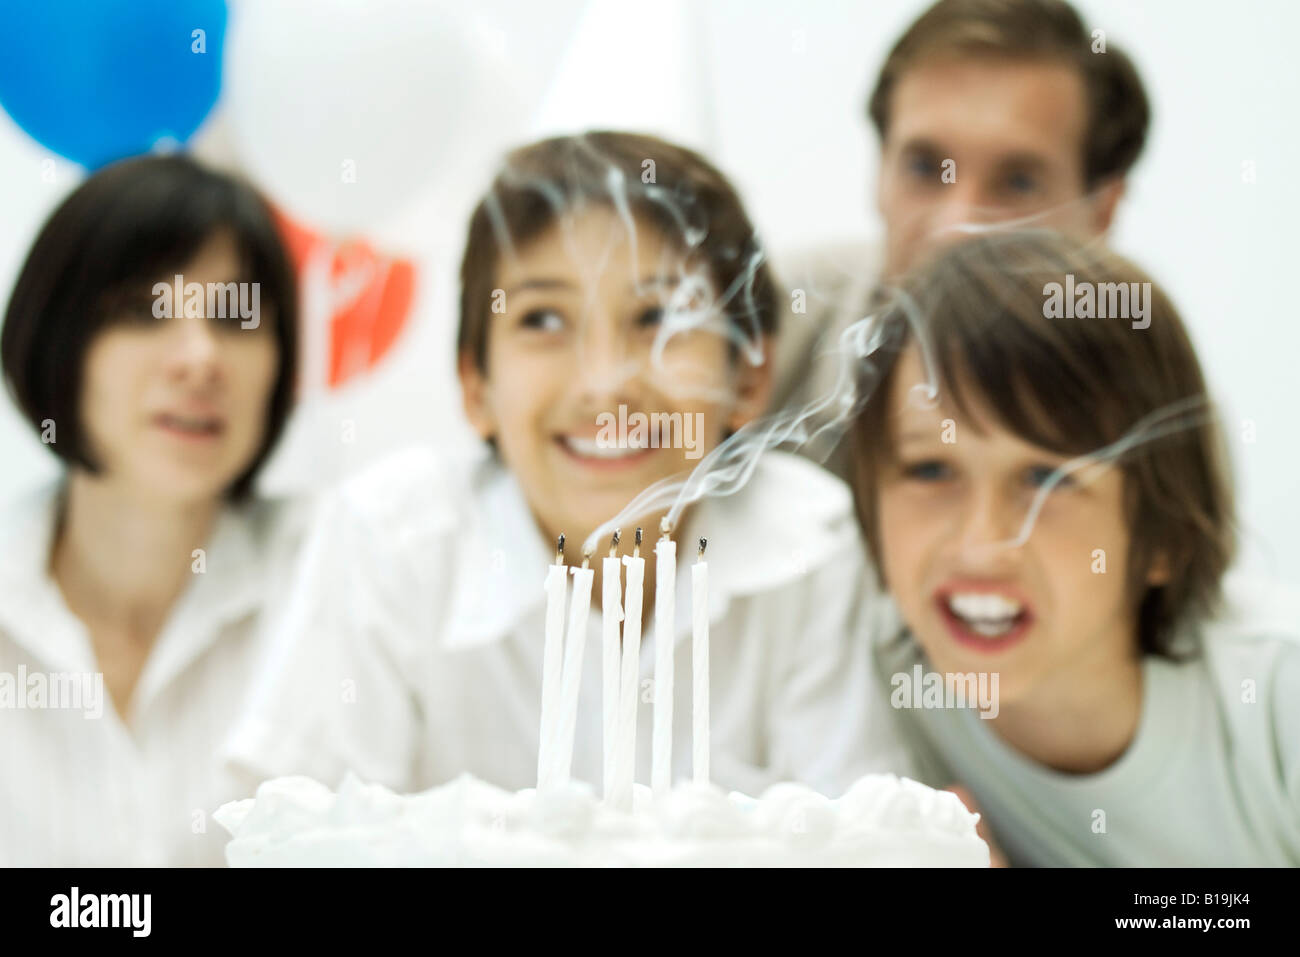 Boys blowing out candles on birthday cake, parents in background - Stock Image